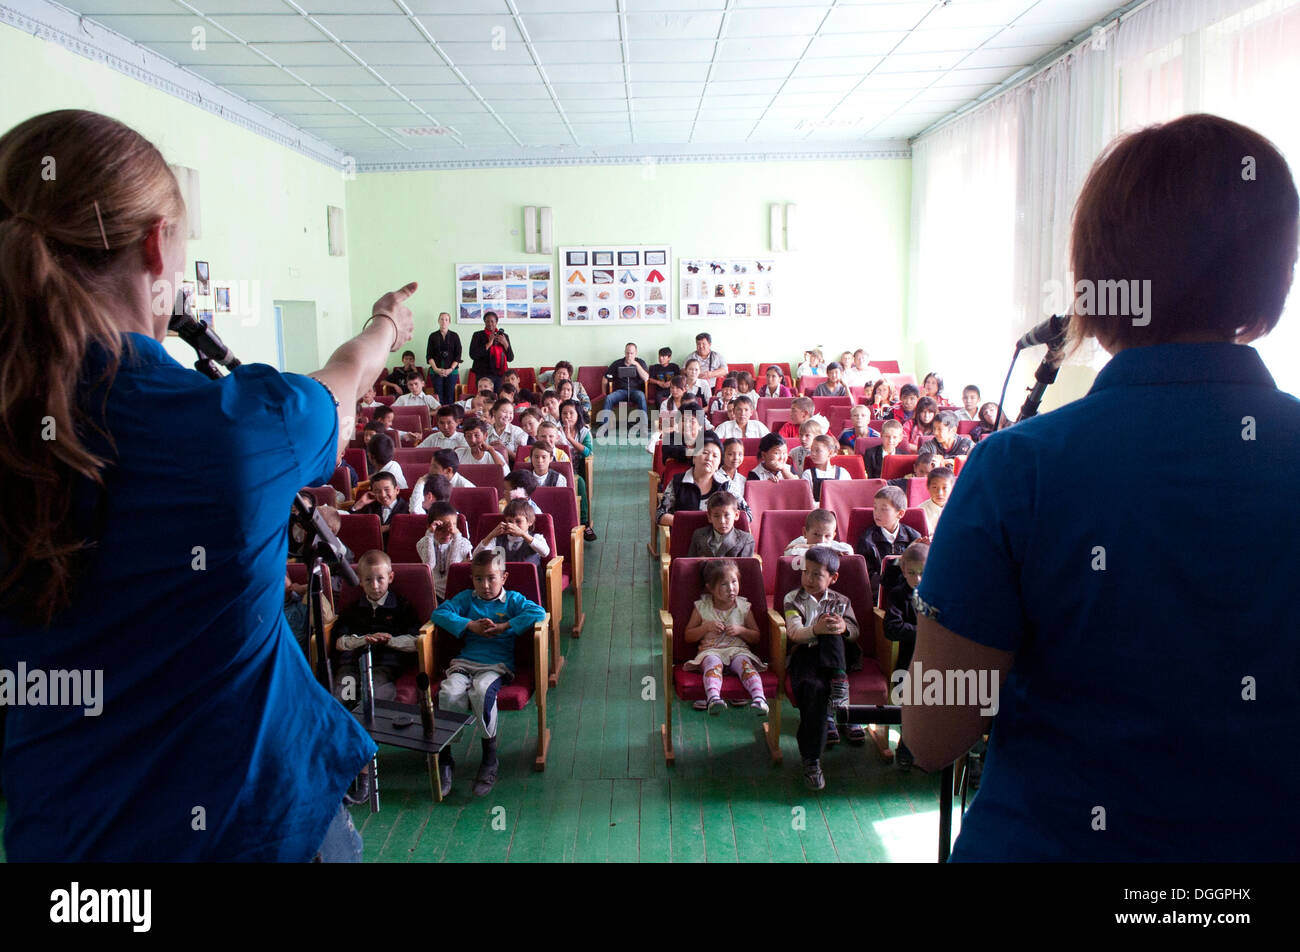 Senior Airman Megan Hokaj, left, and Master Sgt. Sherry Burt, right, sing during the Blue Yonders' performance at Chui Orphanage-Boarding School in Bishkek, Krygyzstan, Oct. 4, 2013. Burt is the noncommissioned officer in charge of the U.S. Air Forces Cen - Stock Image